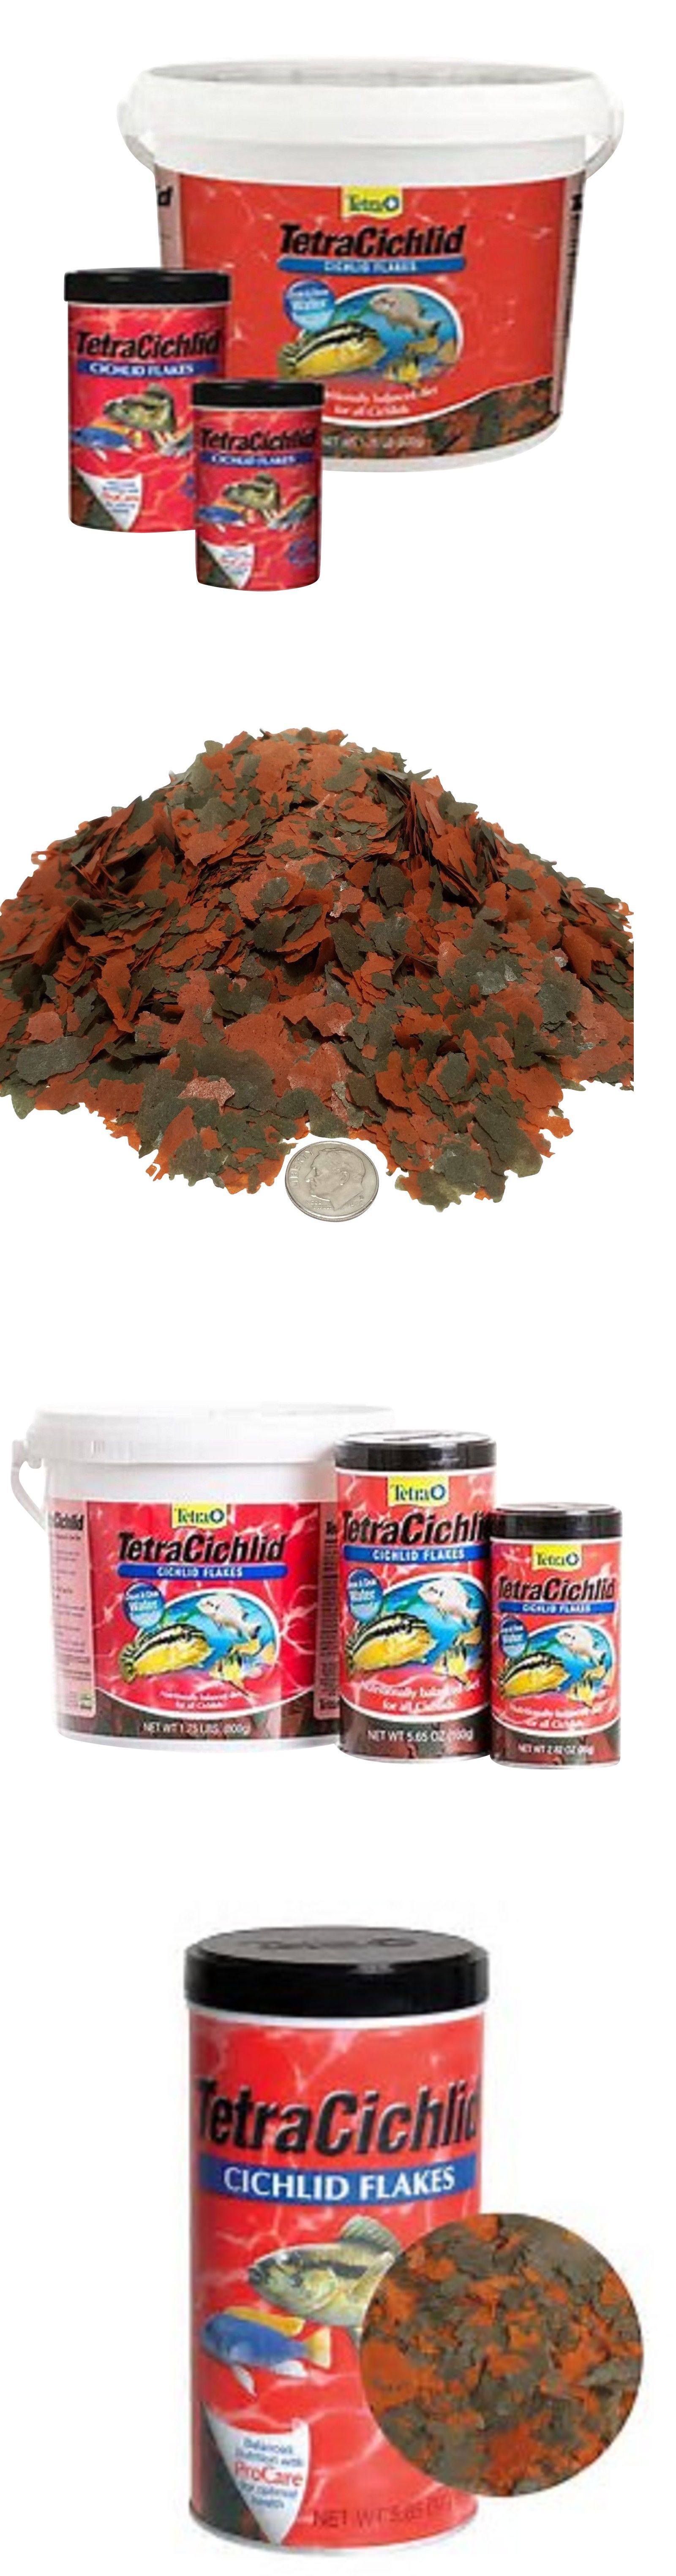 Details about tetra min cichlid flakes by tetramin in